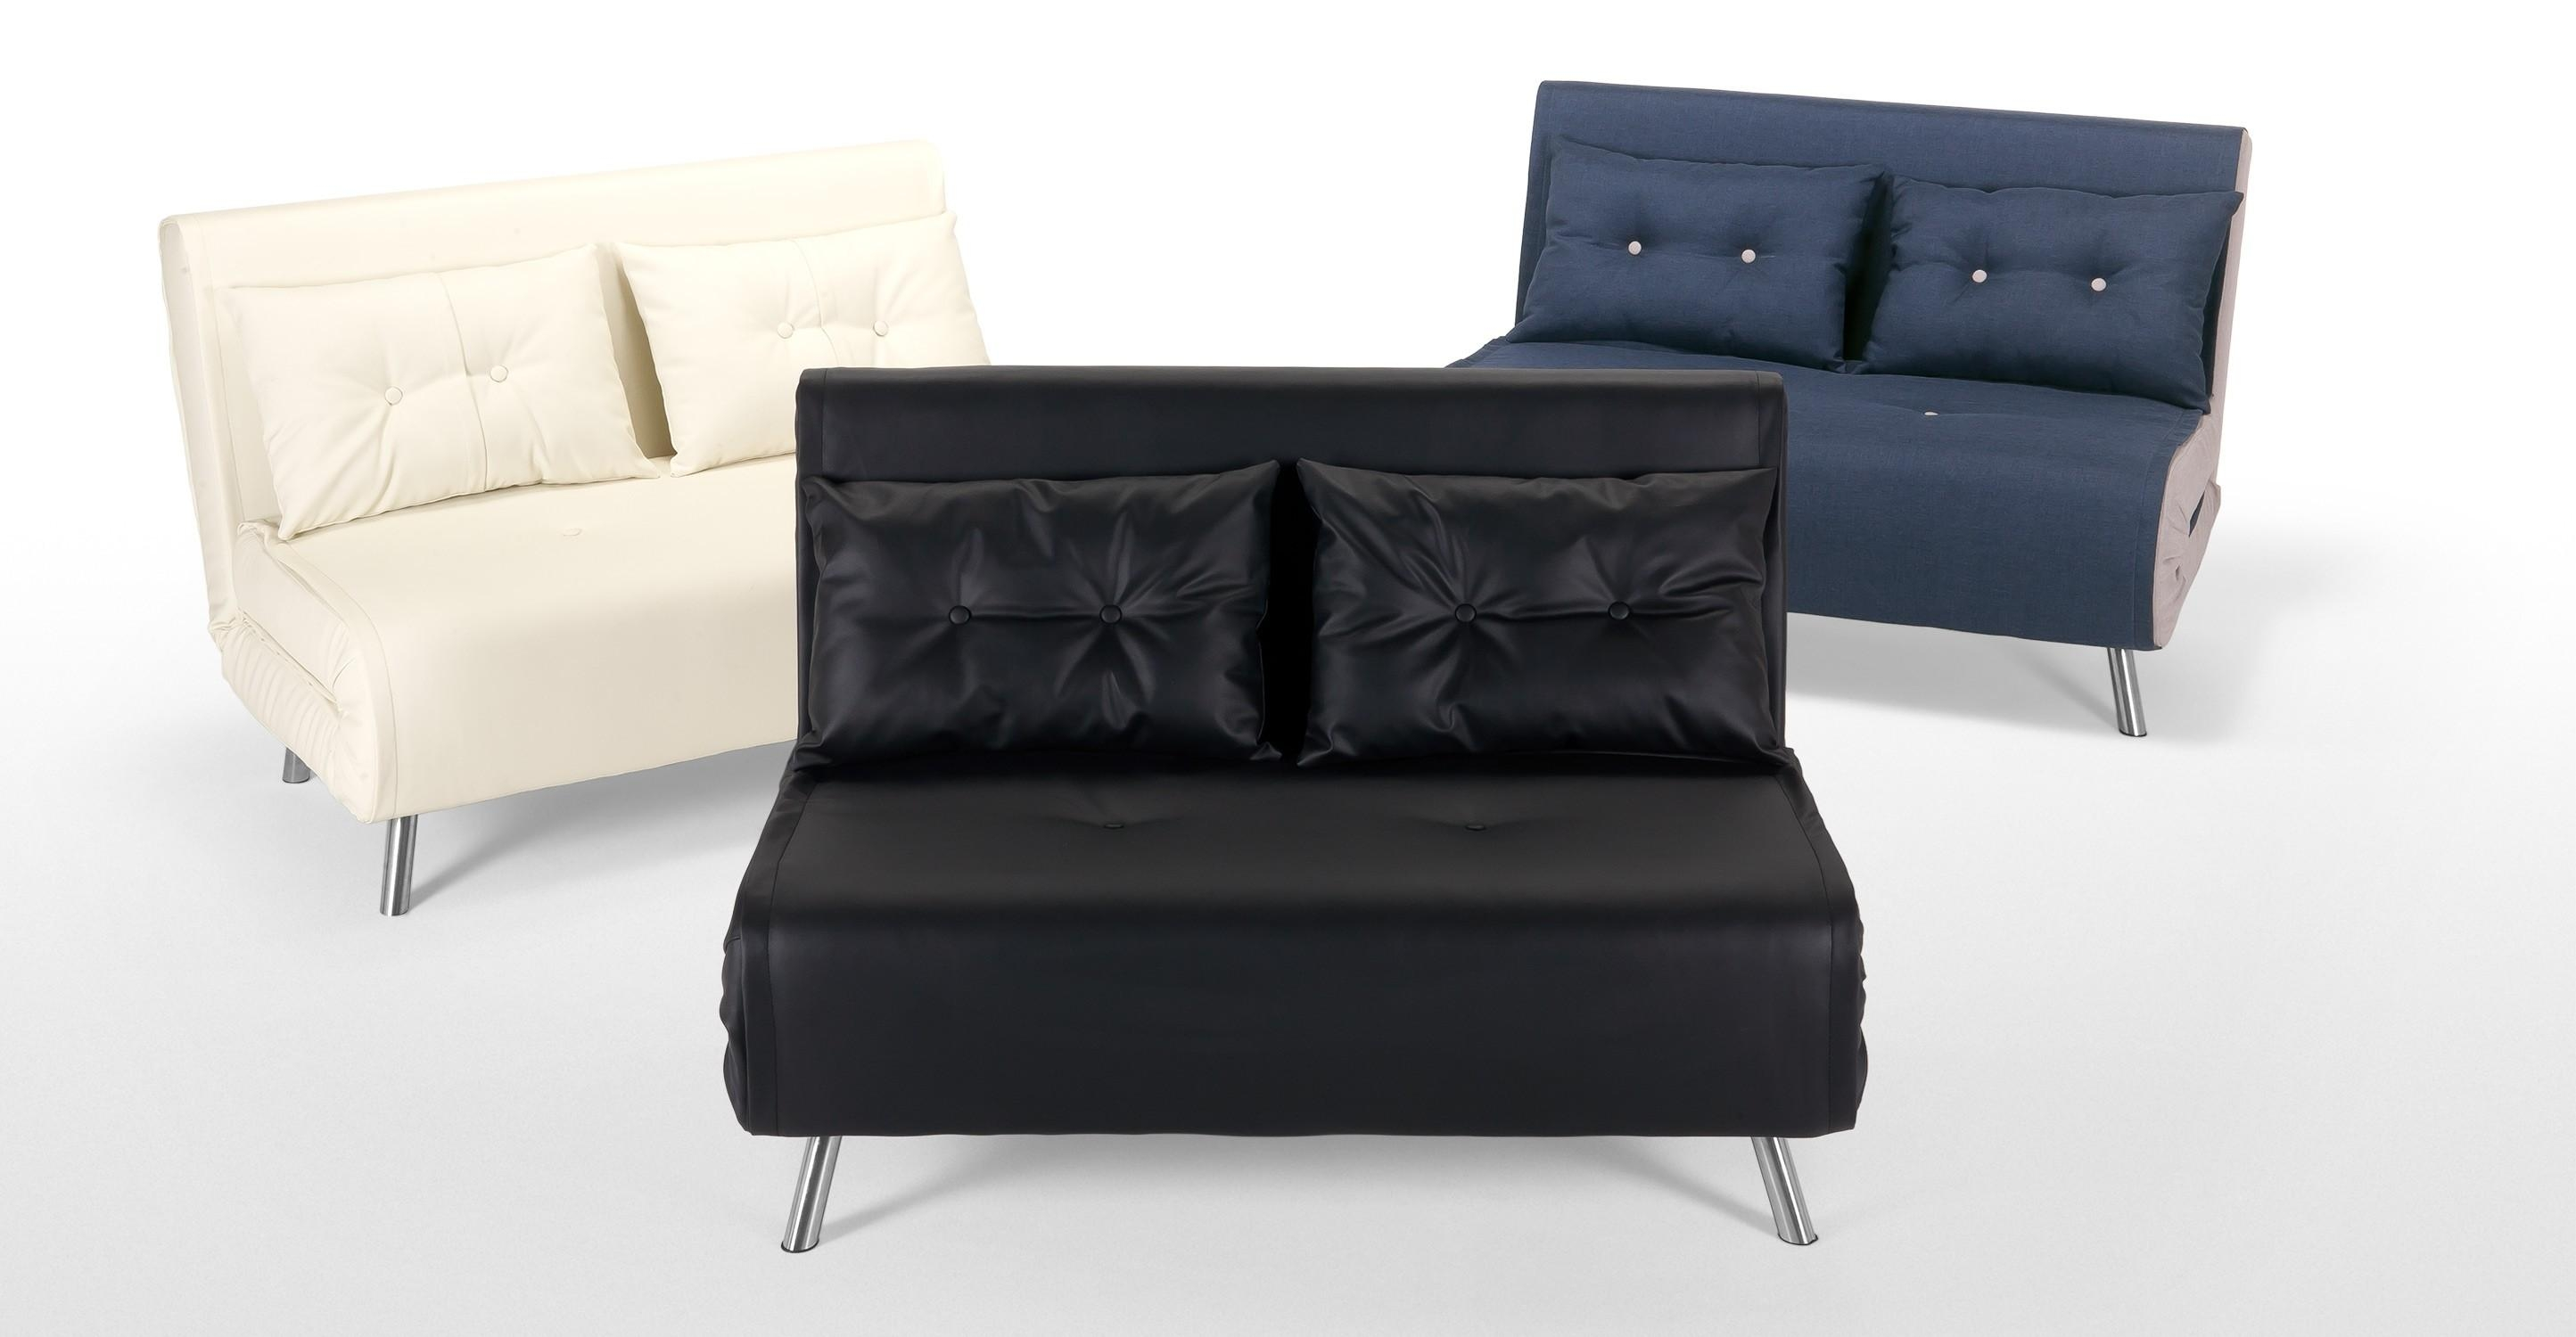 Small Office Sofa With Concept Hd Images 23866 | Kengire For Small Office Sofas (View 8 of 20)